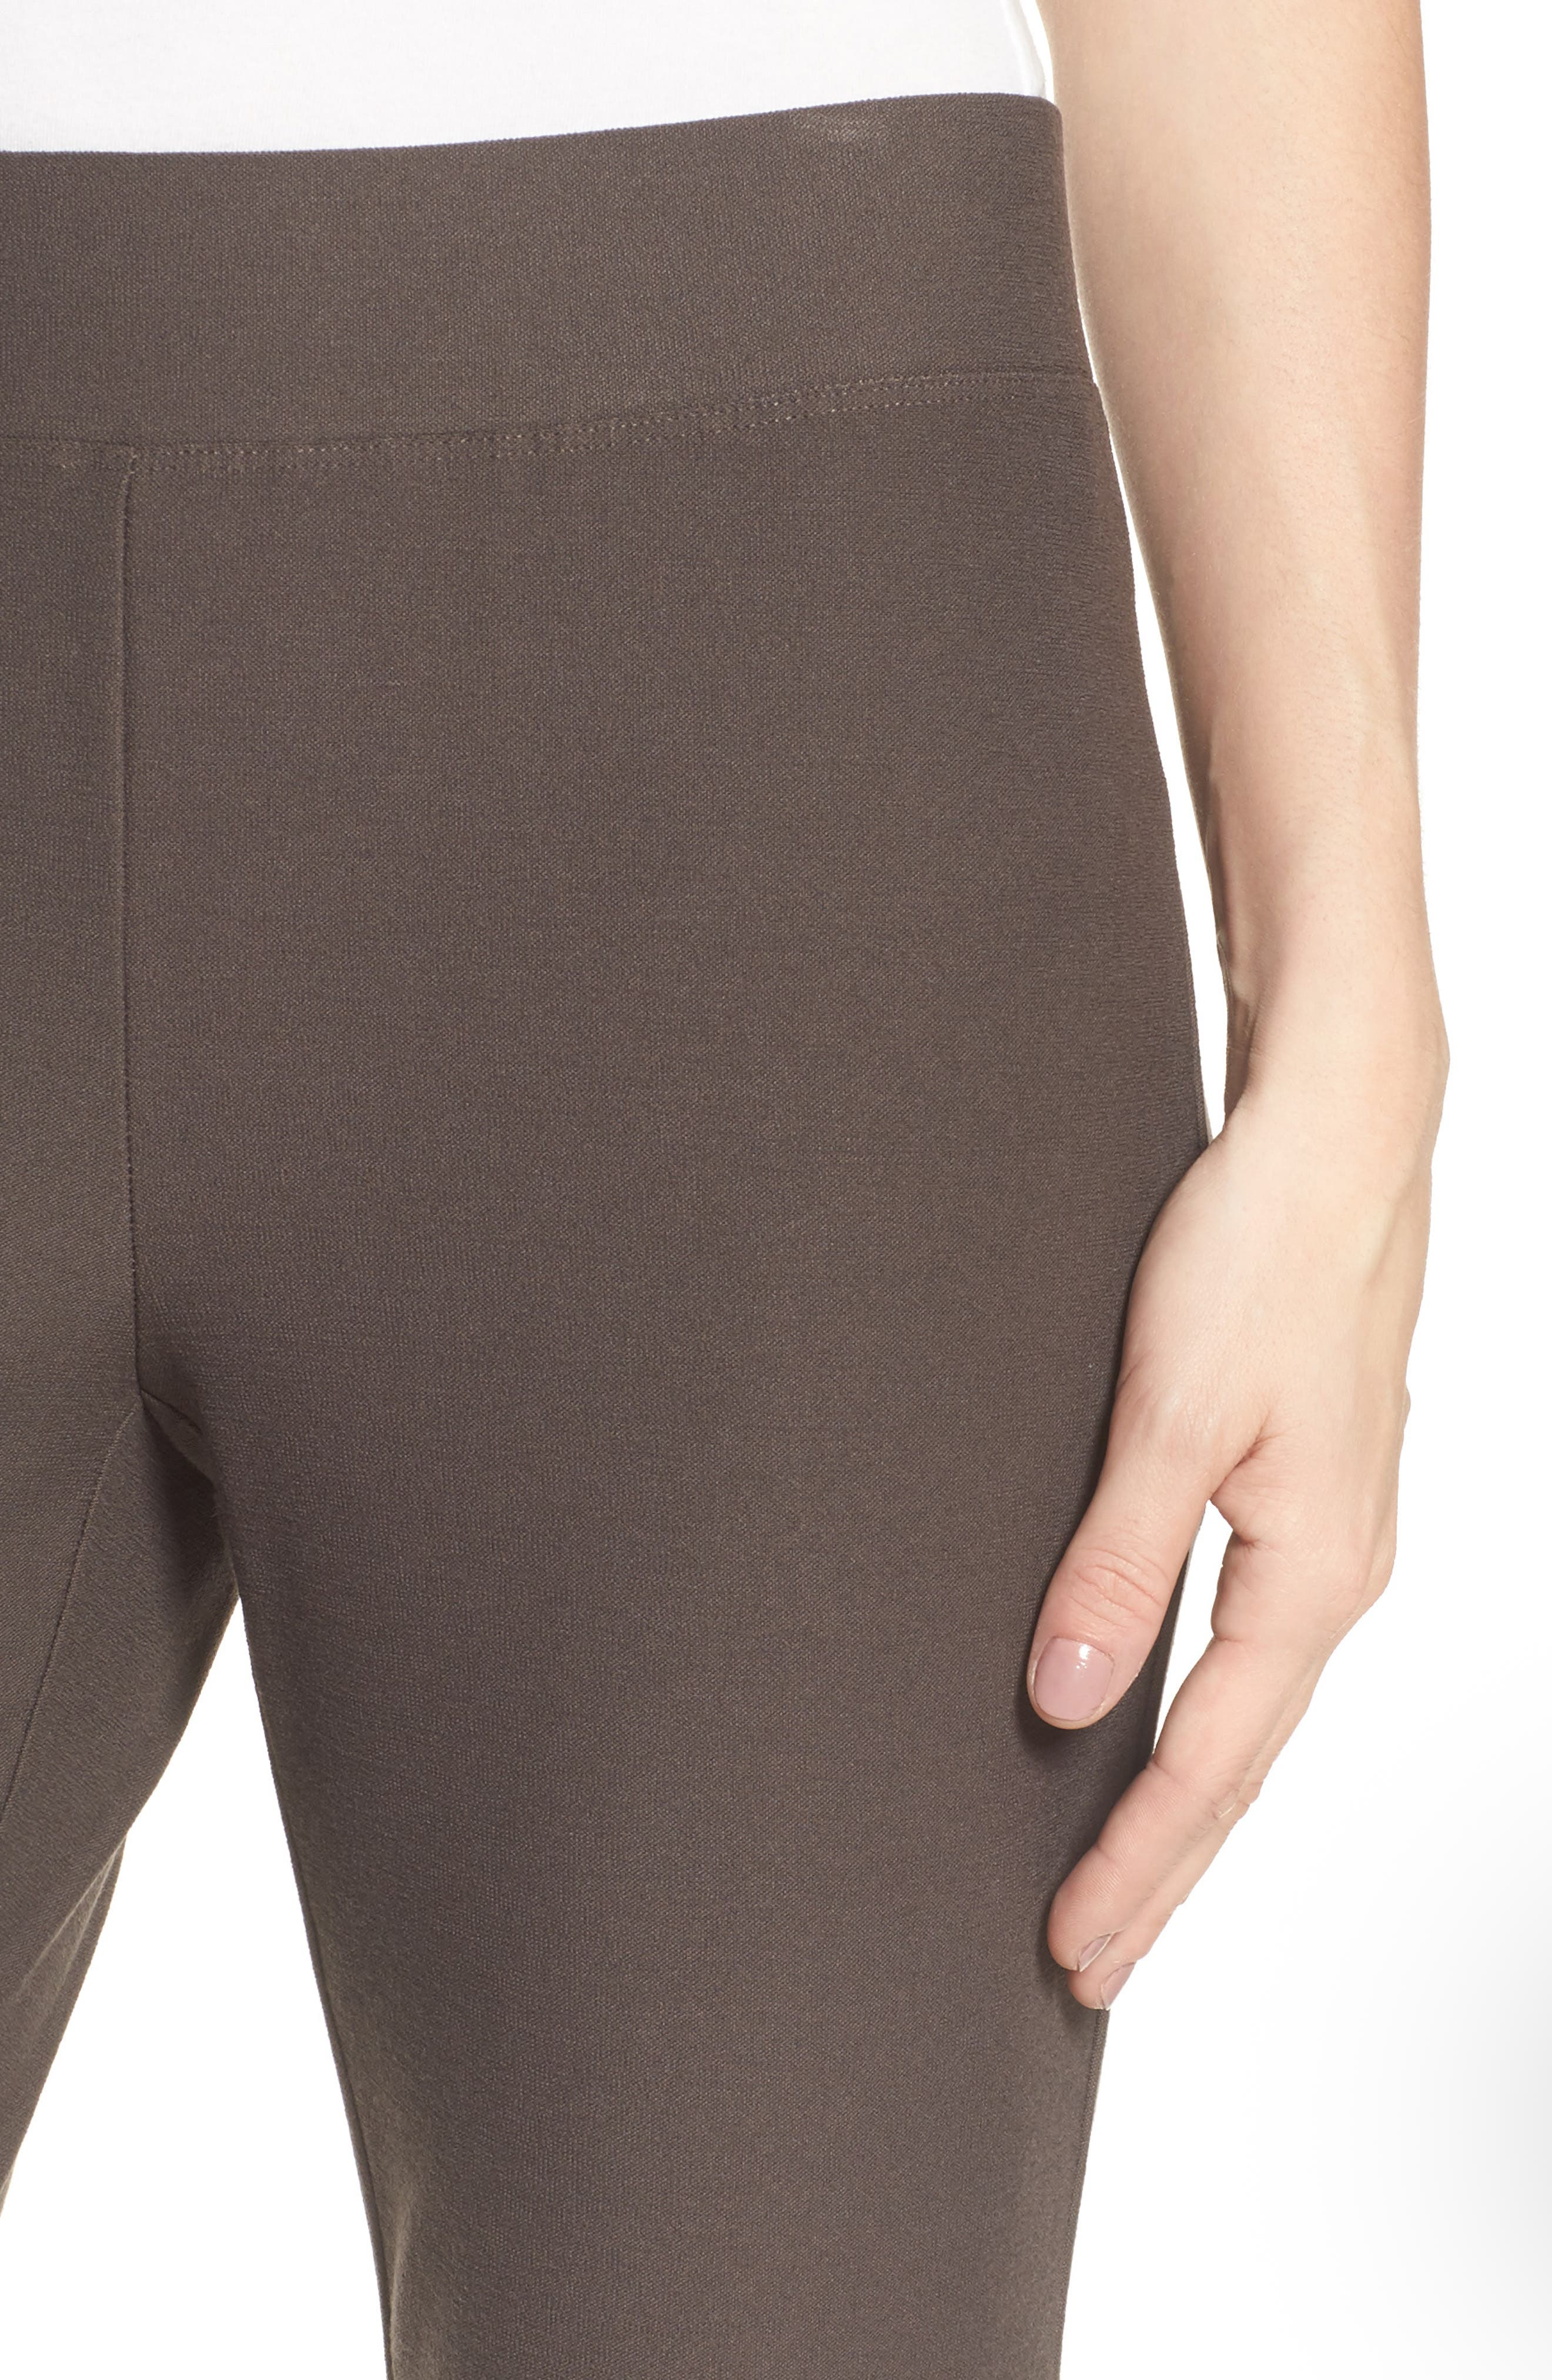 Notch Cuff Slim Crop Pants,                             Alternate thumbnail 4, color,                             024